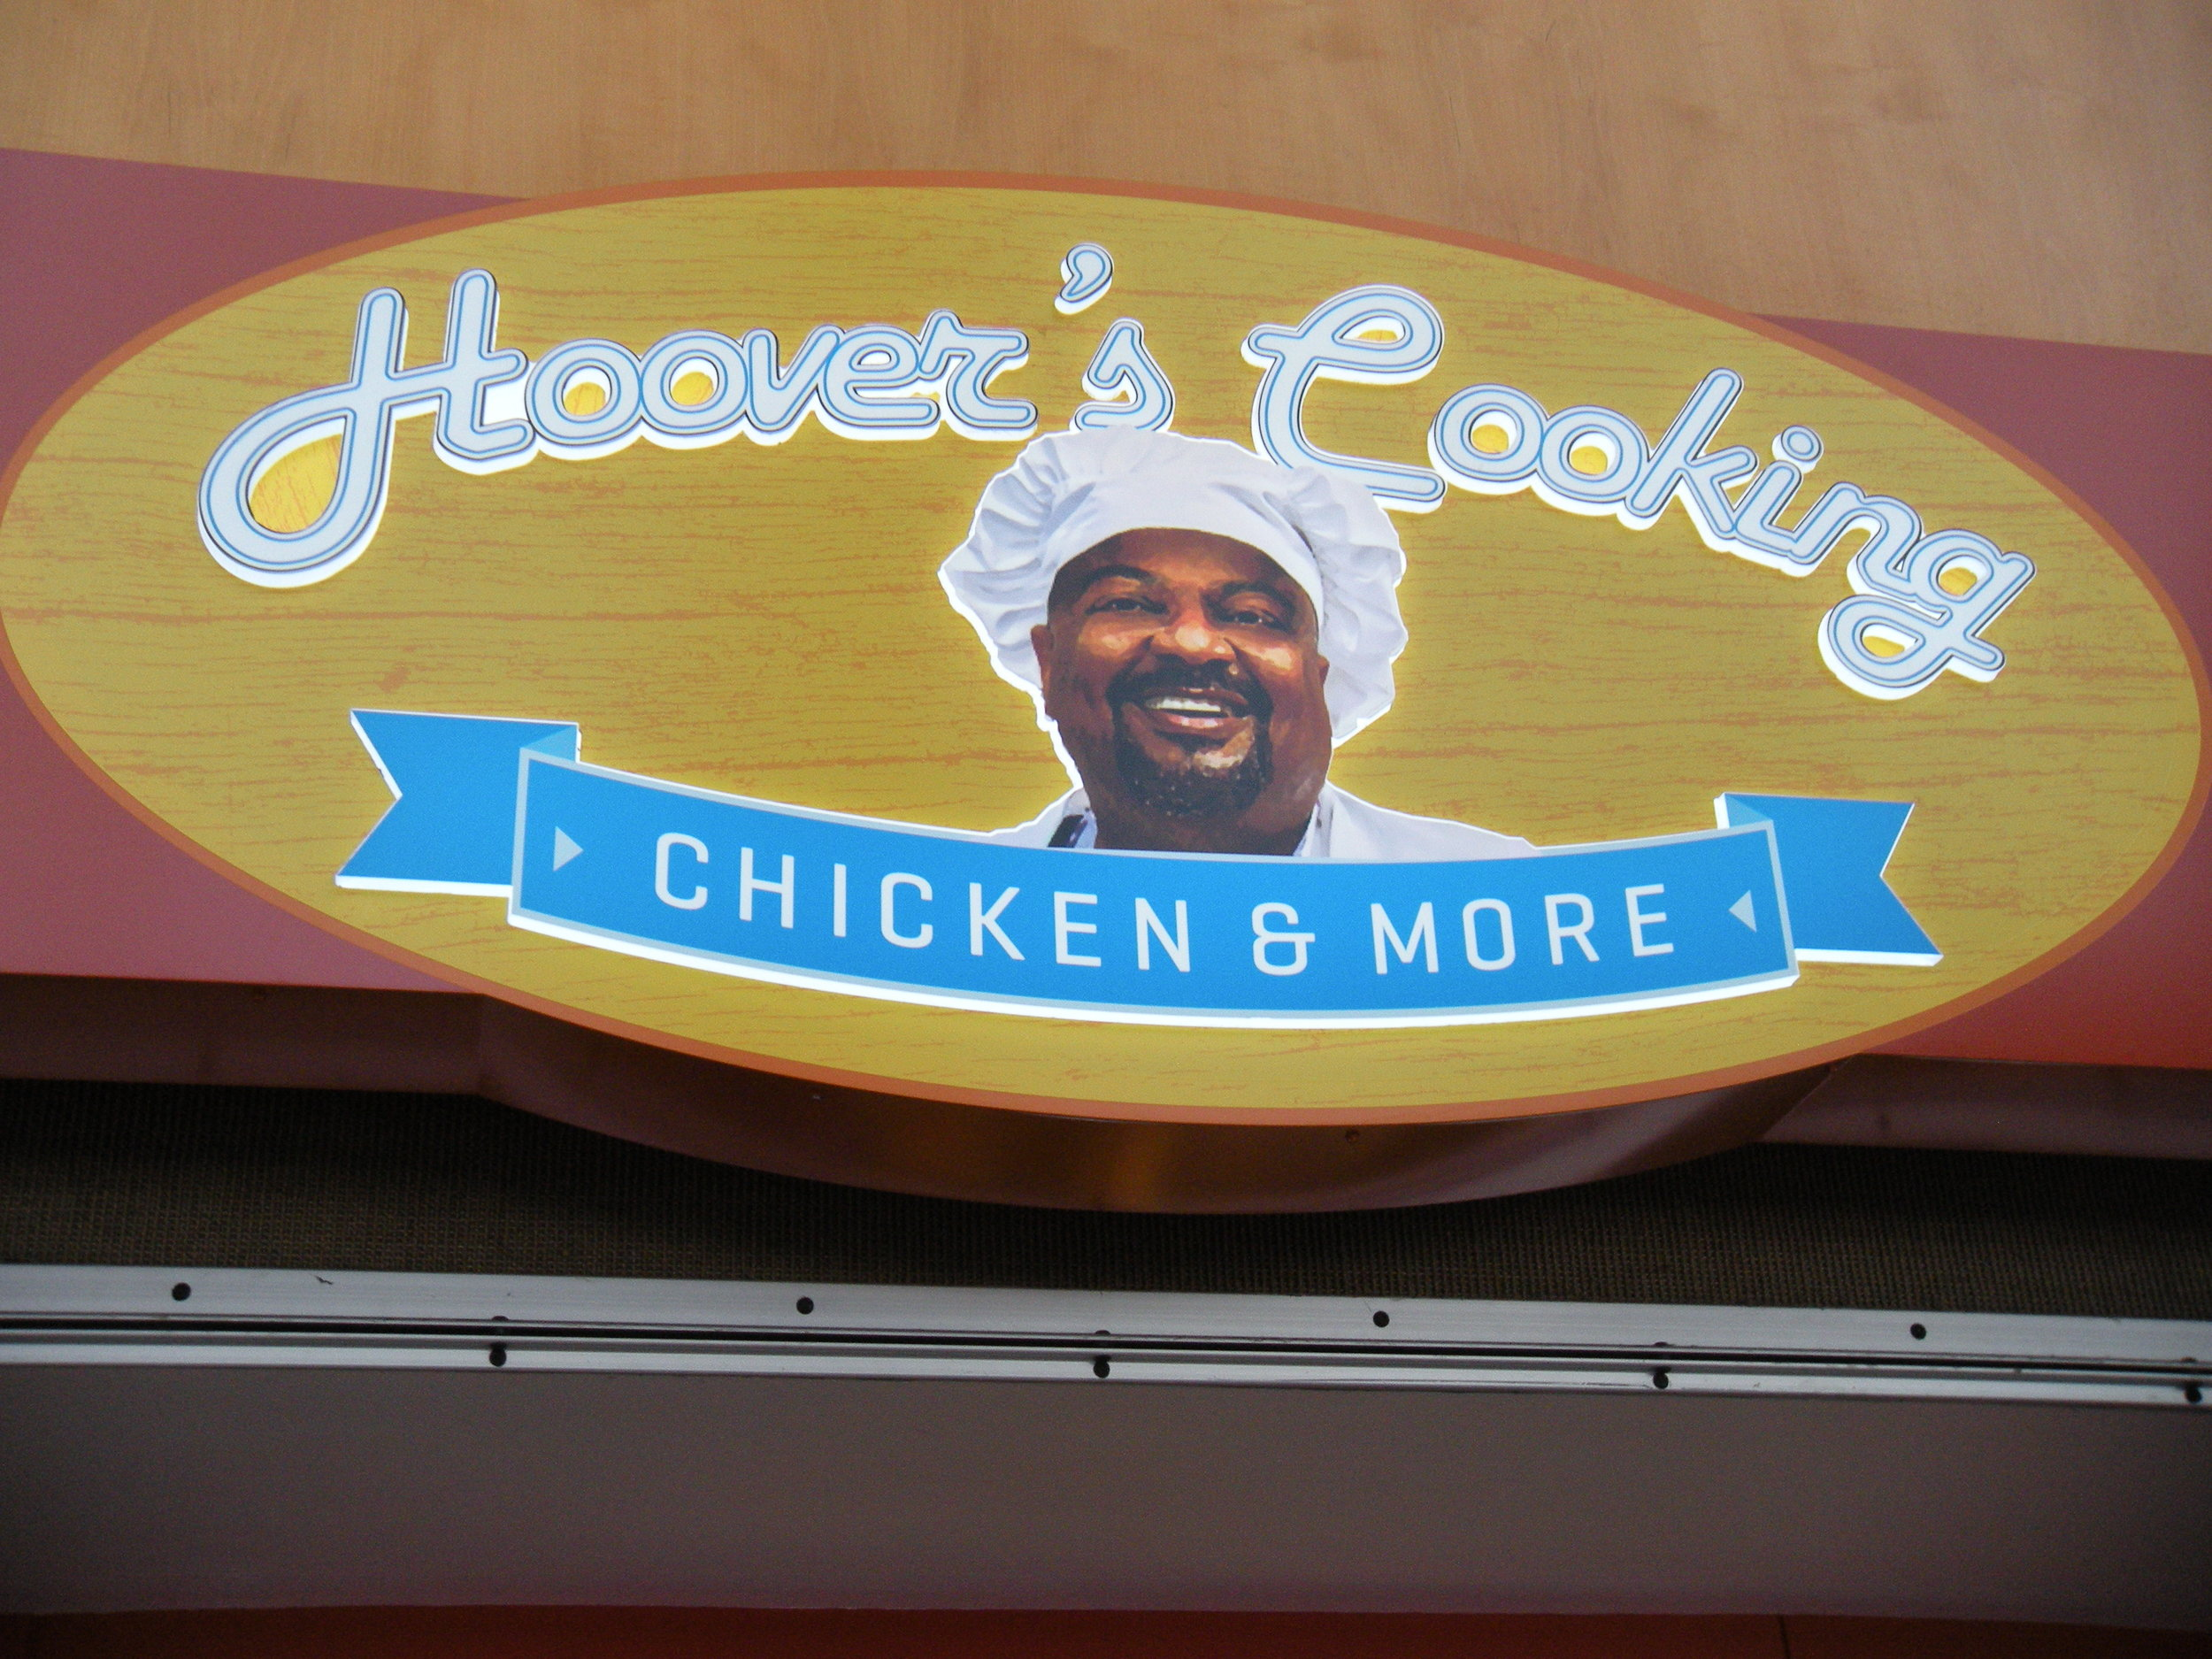 This is where we got our airport chicken. He looks happy to have fed me.